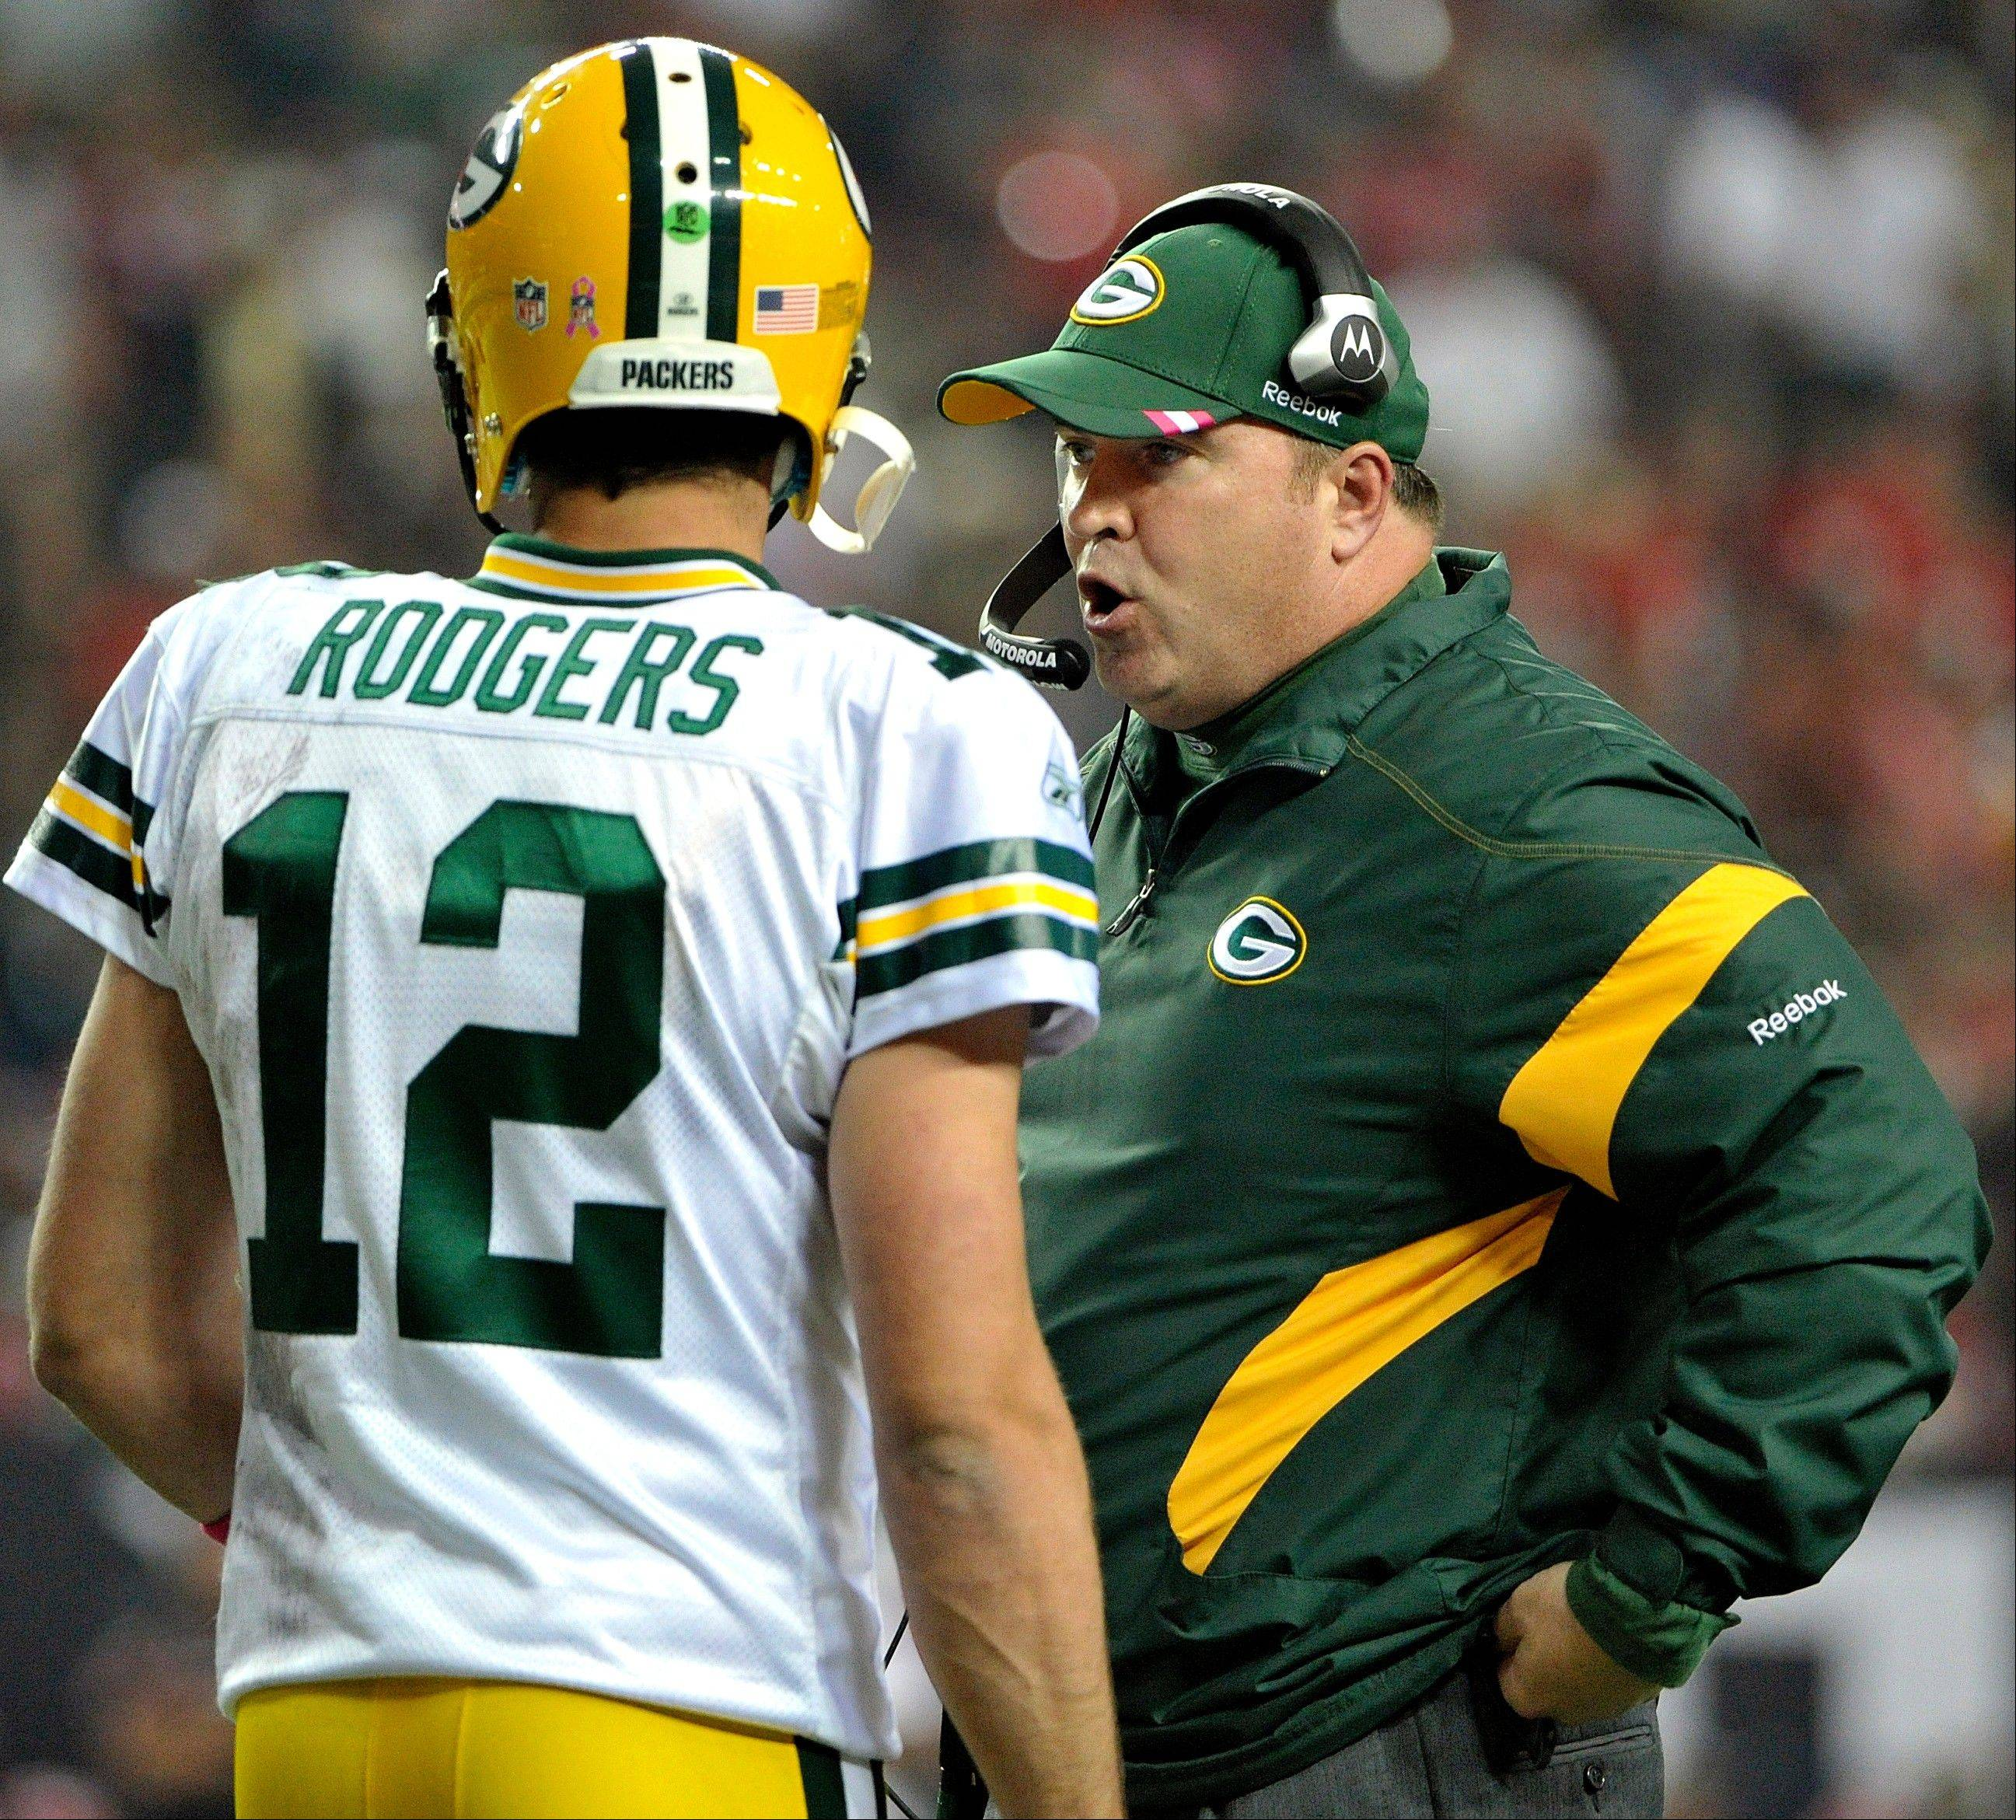 Unbeaten Green Bay Packers 'looking at greatness'